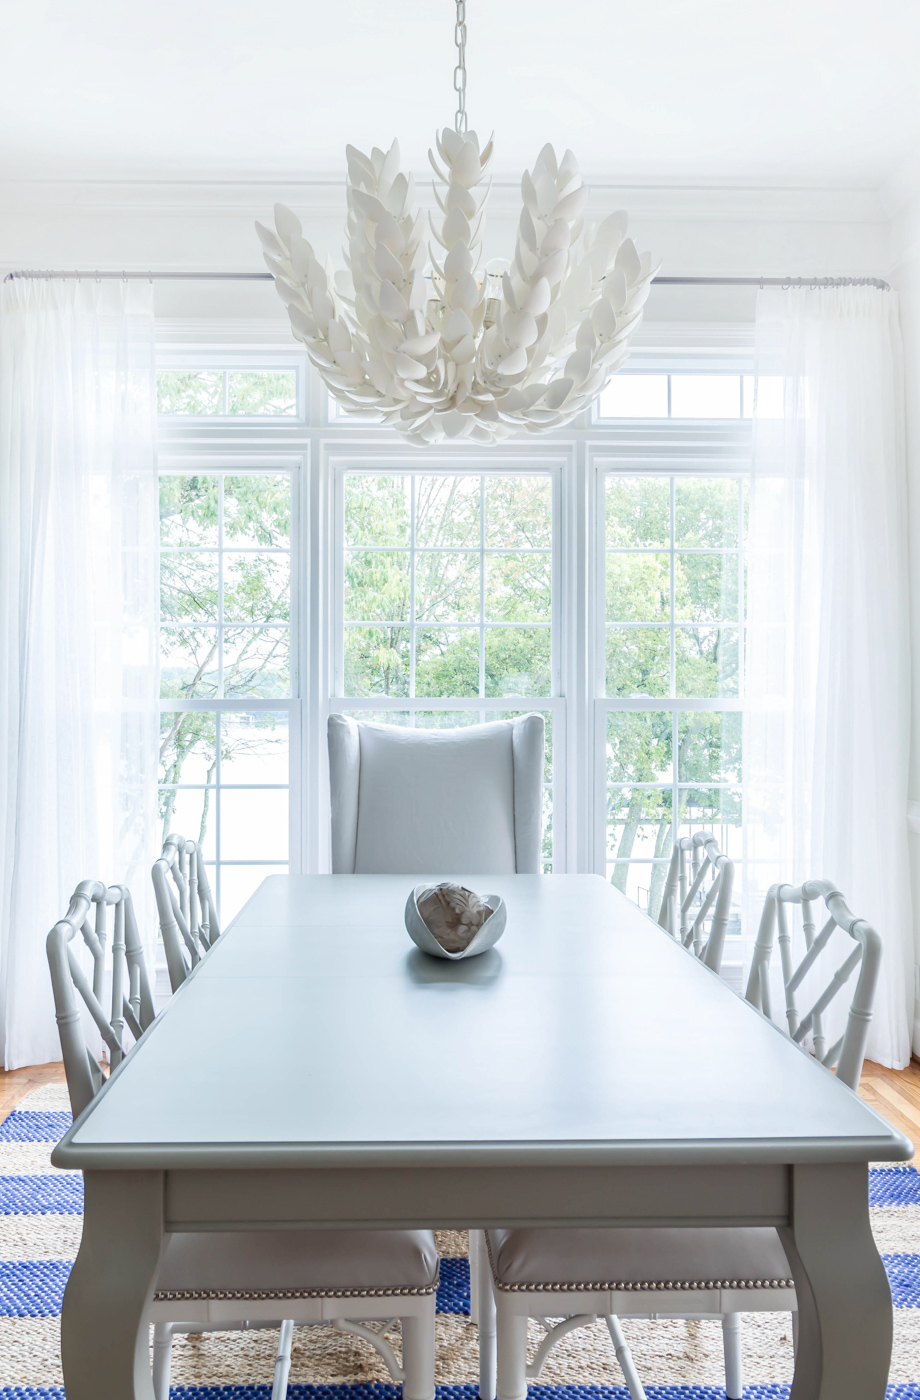 Eclectic Home Tour - love this neutral white dining room with statement chandelier #chandelier #diningroom #diningroomdecor #neutraldecor